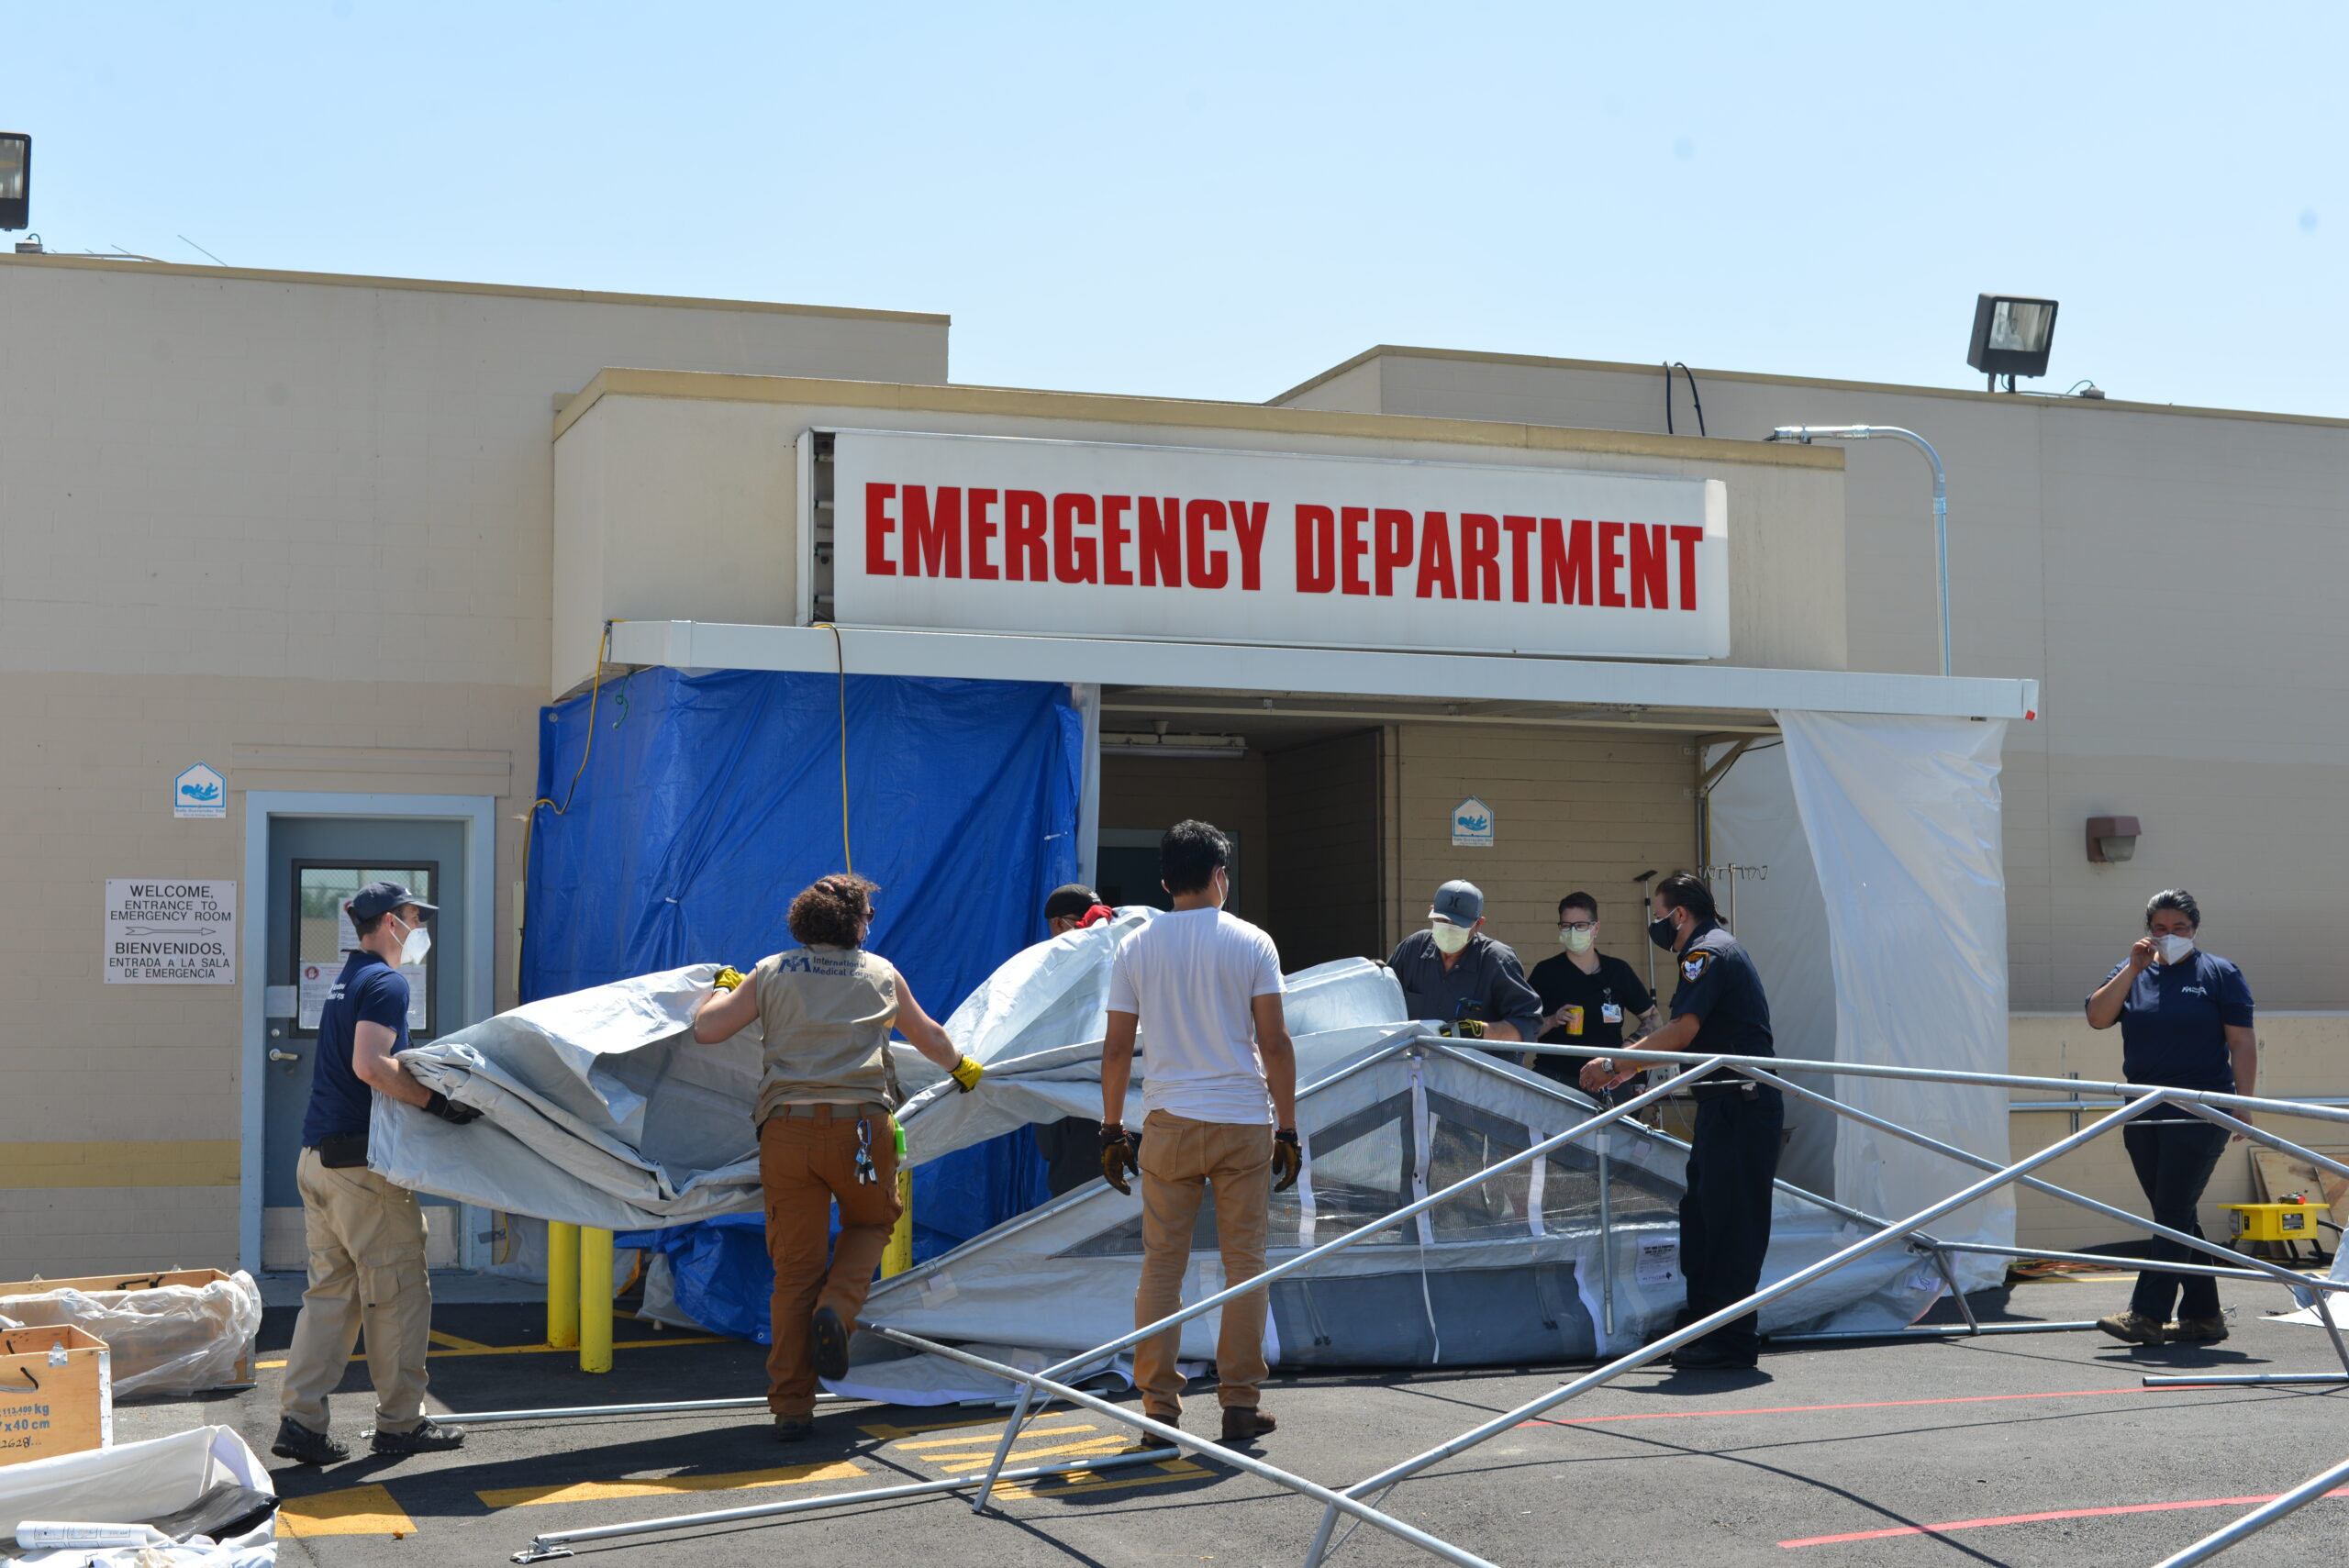 Emergency Medical Field Unit construction at East Los Angeles Doctors Hospital.